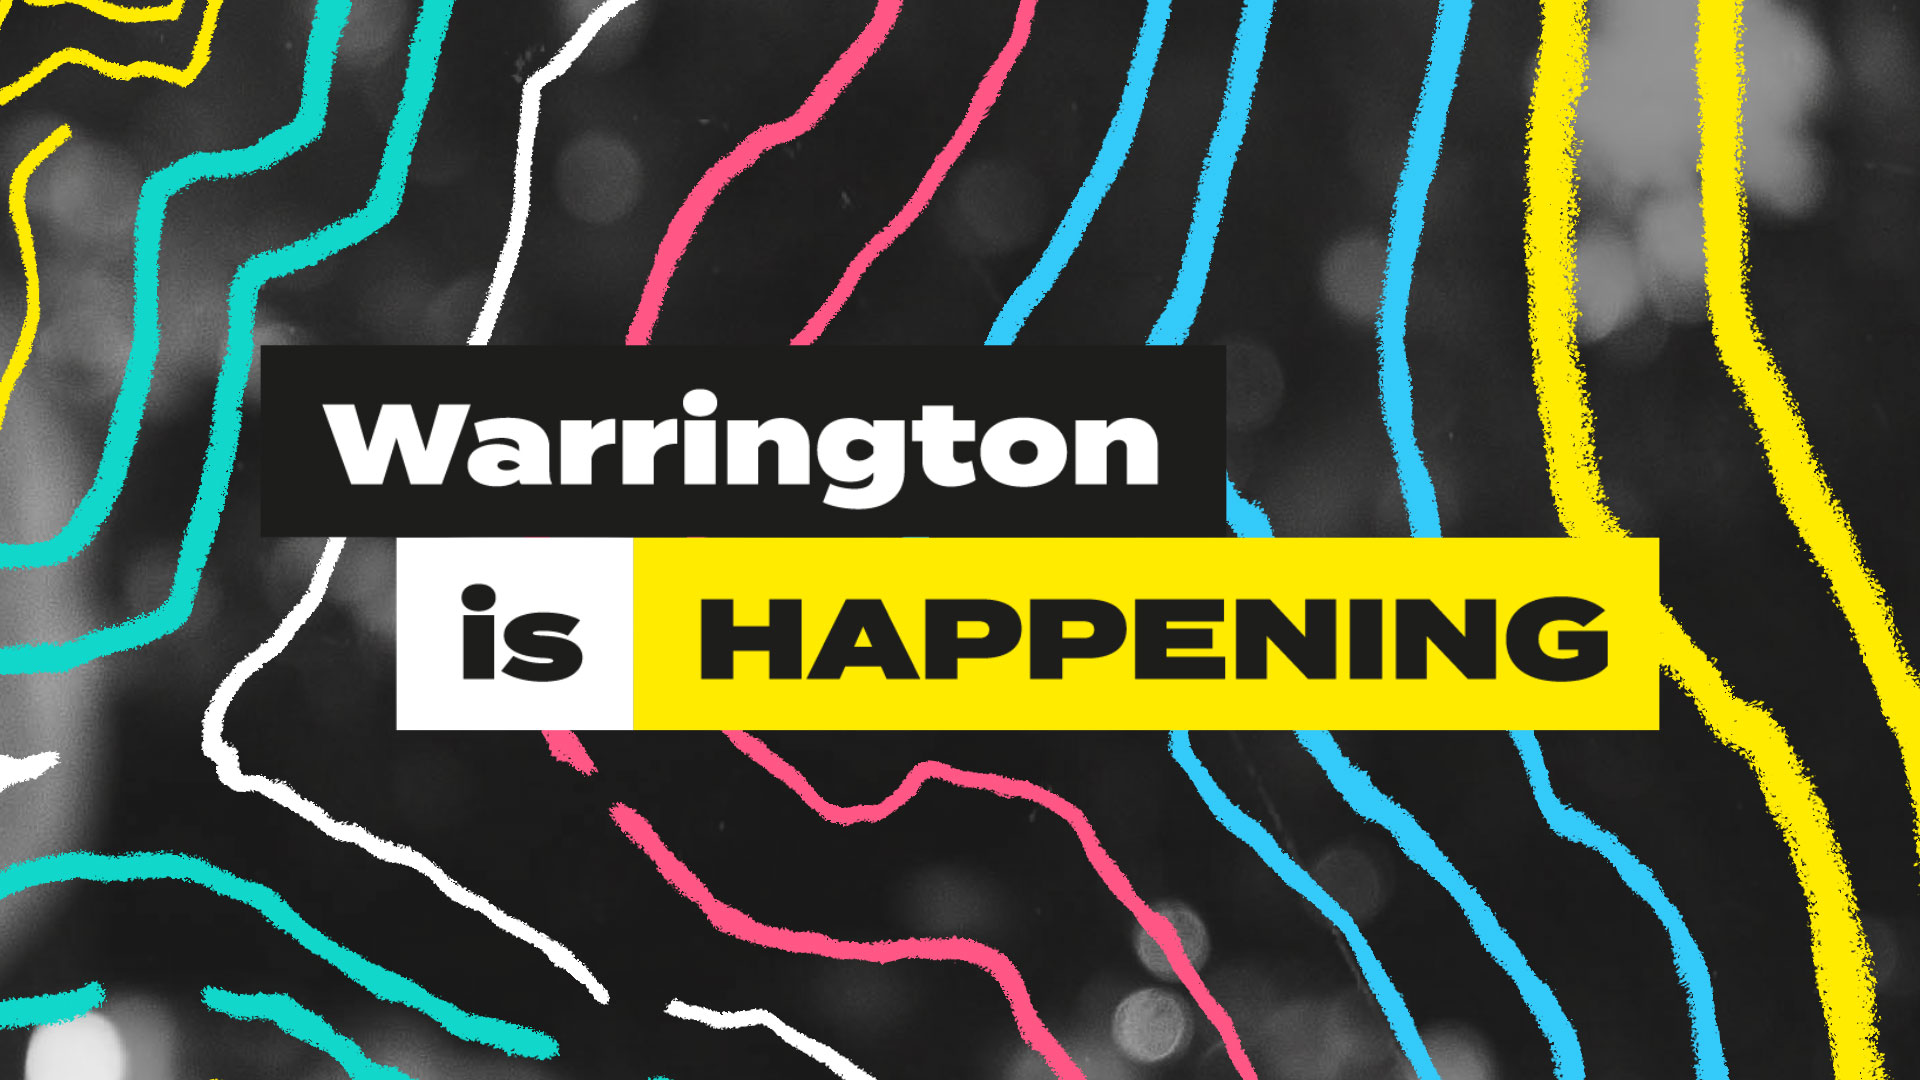 CUNNING PLAN LAUNCHES NEW DESTINATION BRAND AND WEBSITE FOR WARRINGTON